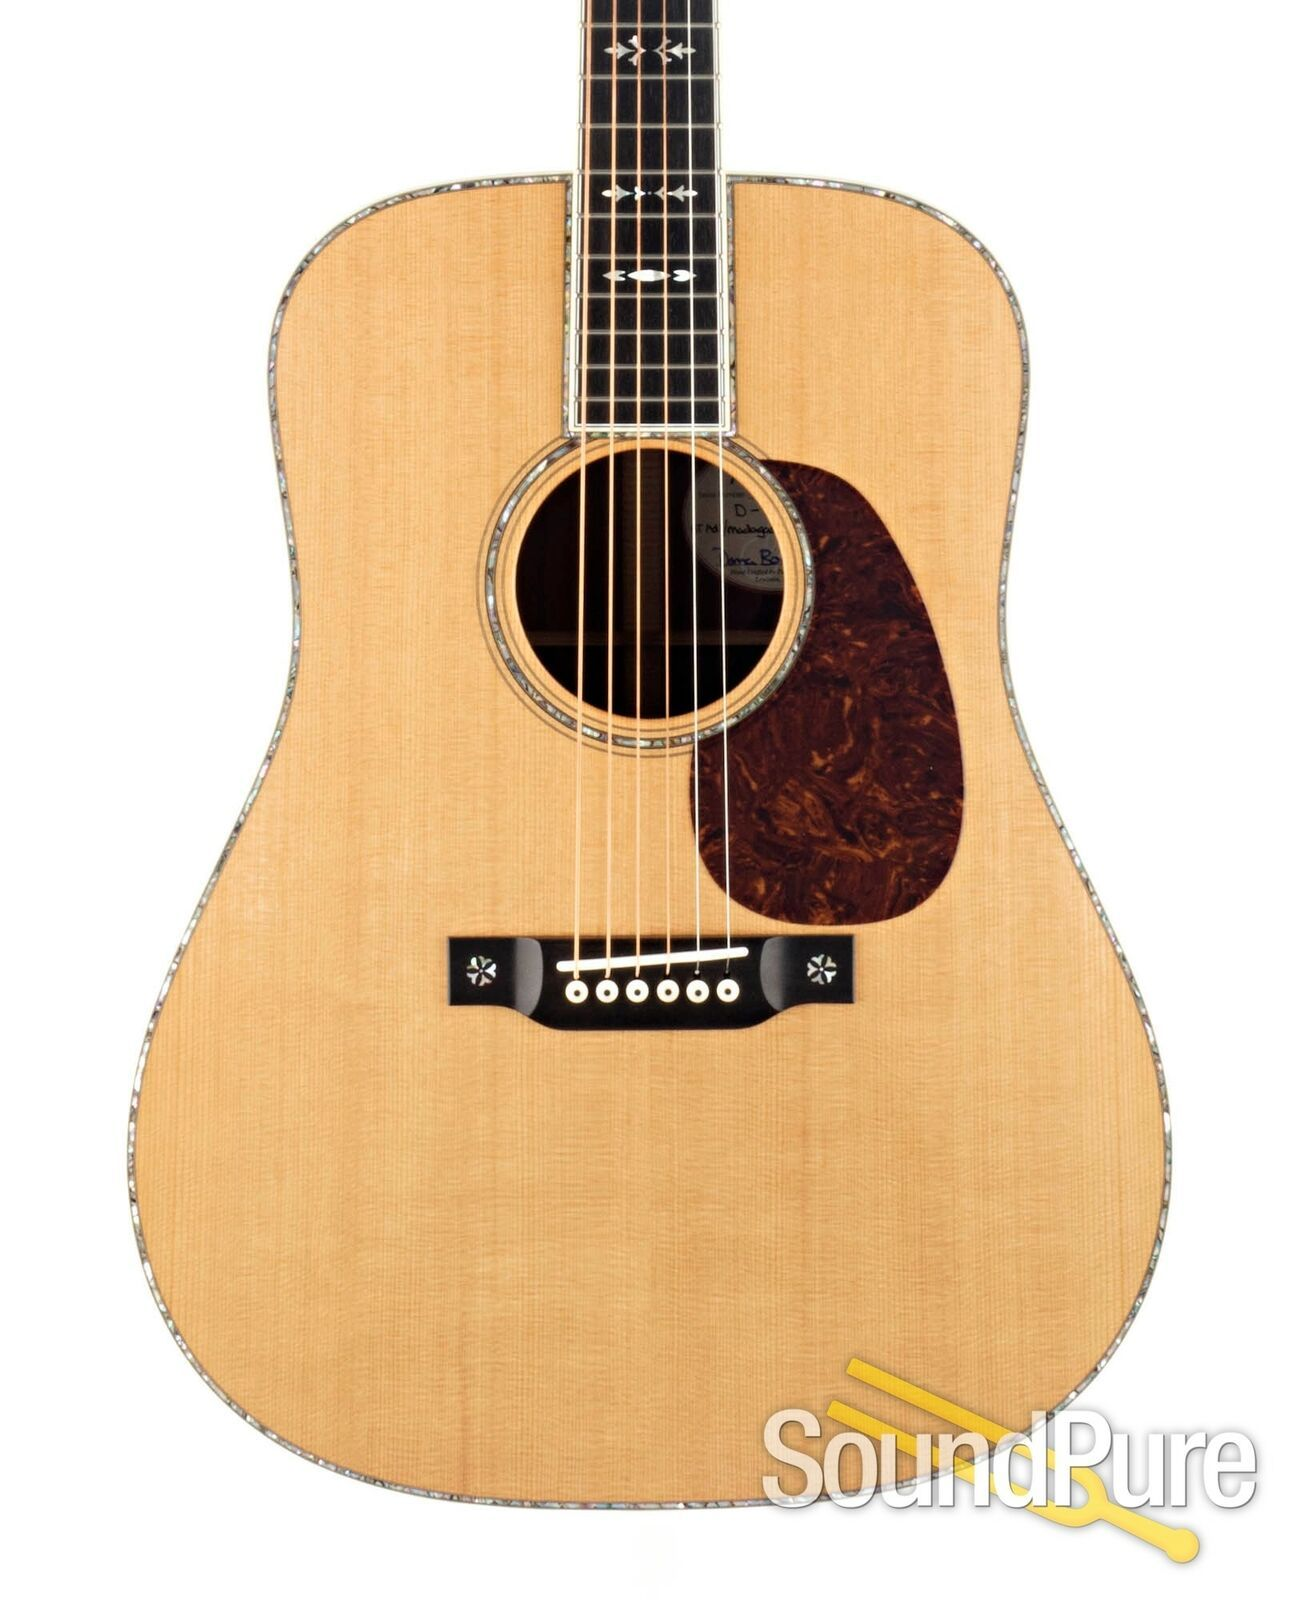 Bourgeois D Style 42 Adirondack Rosewood 8031 Used In 2020 Guitar Folk Instruments Acoustic Guitar